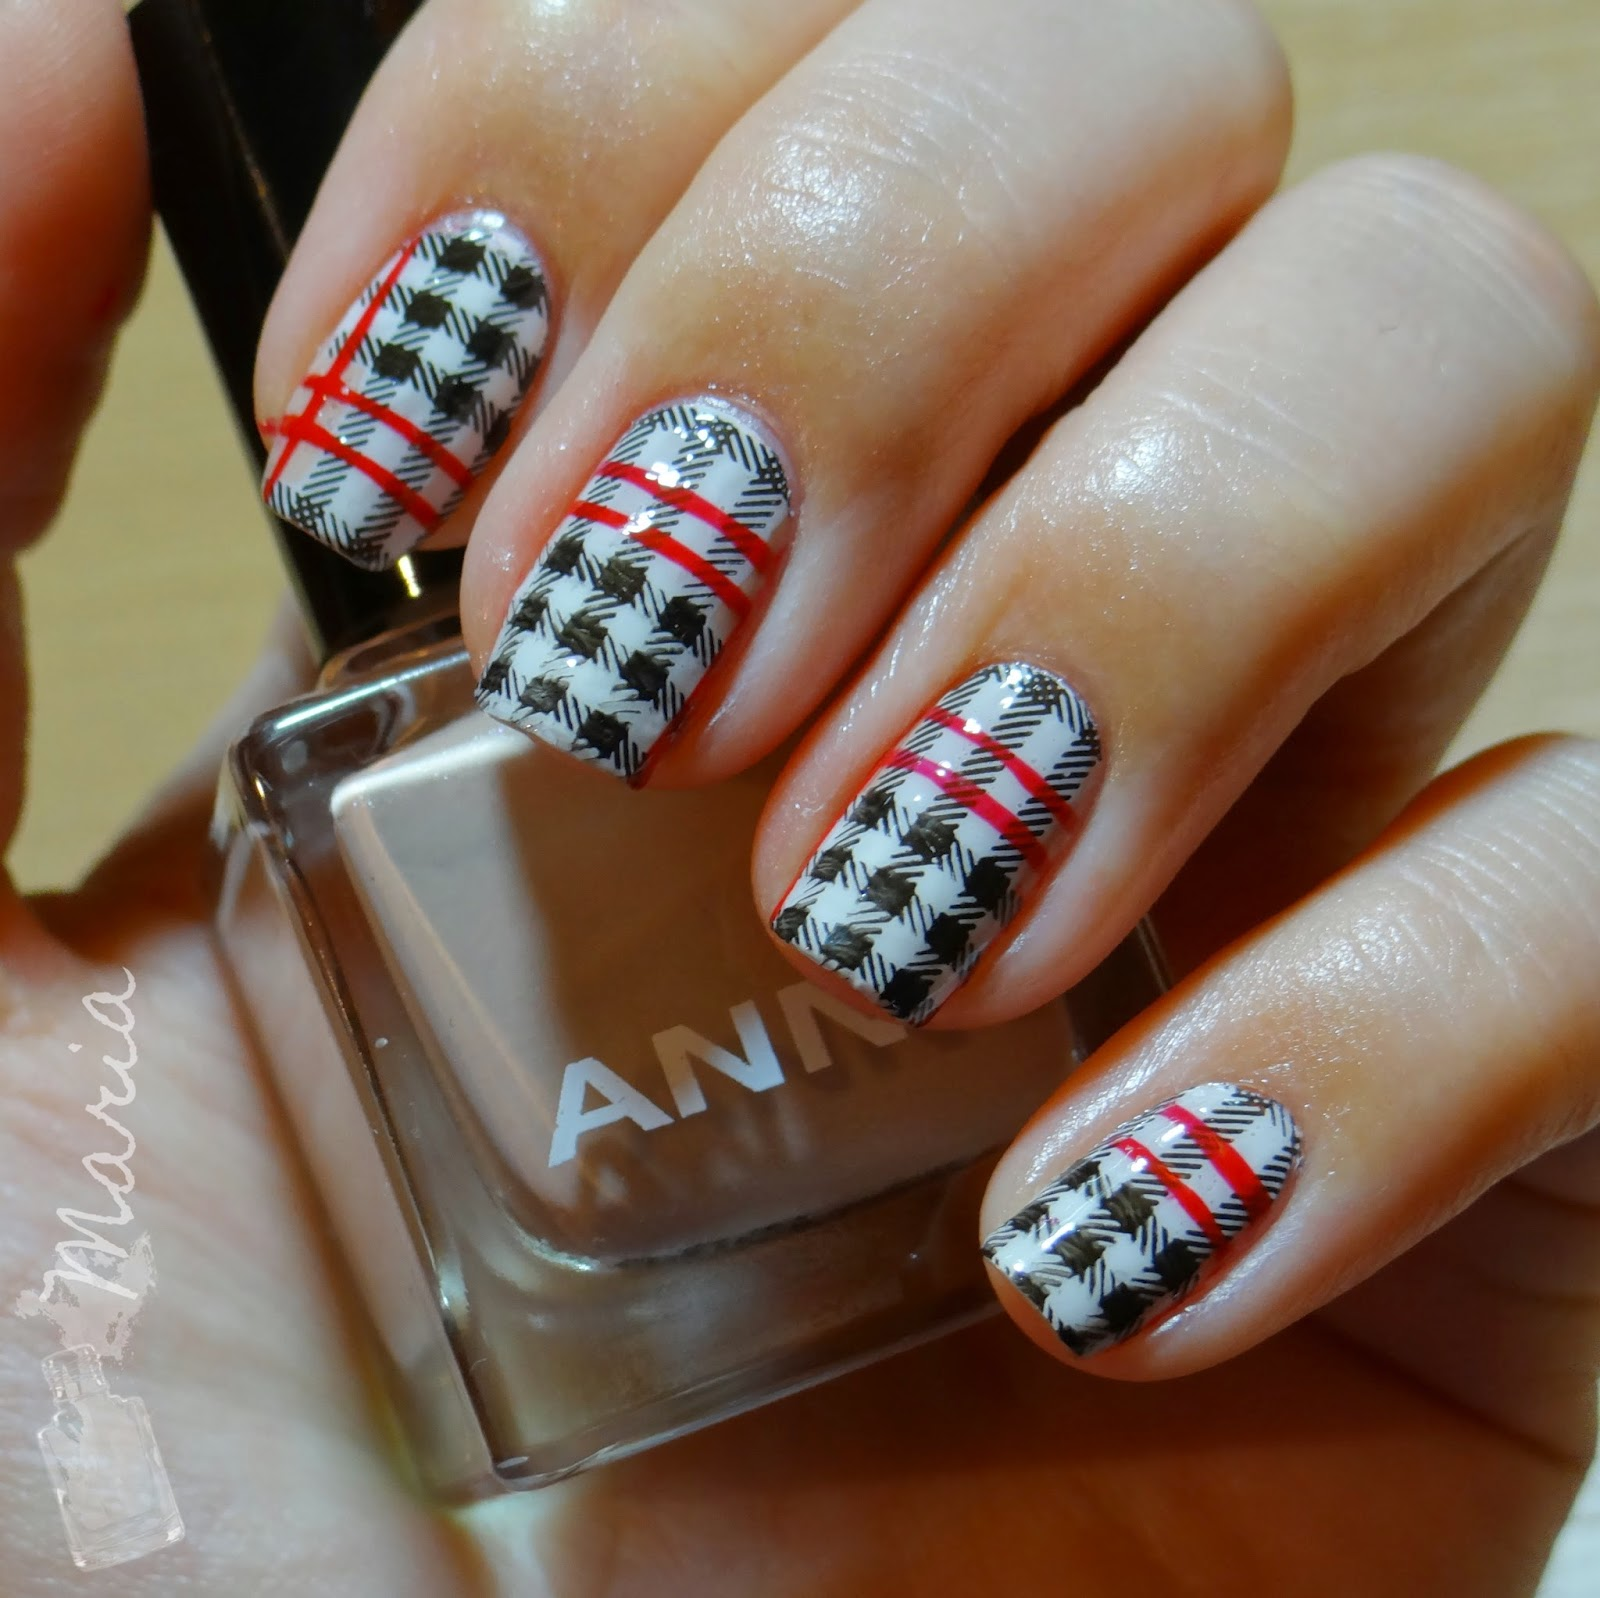 http://rainpow-nails.blogspot.de/2014/11/inspired-by-fabric-kind-of-burberryish.html